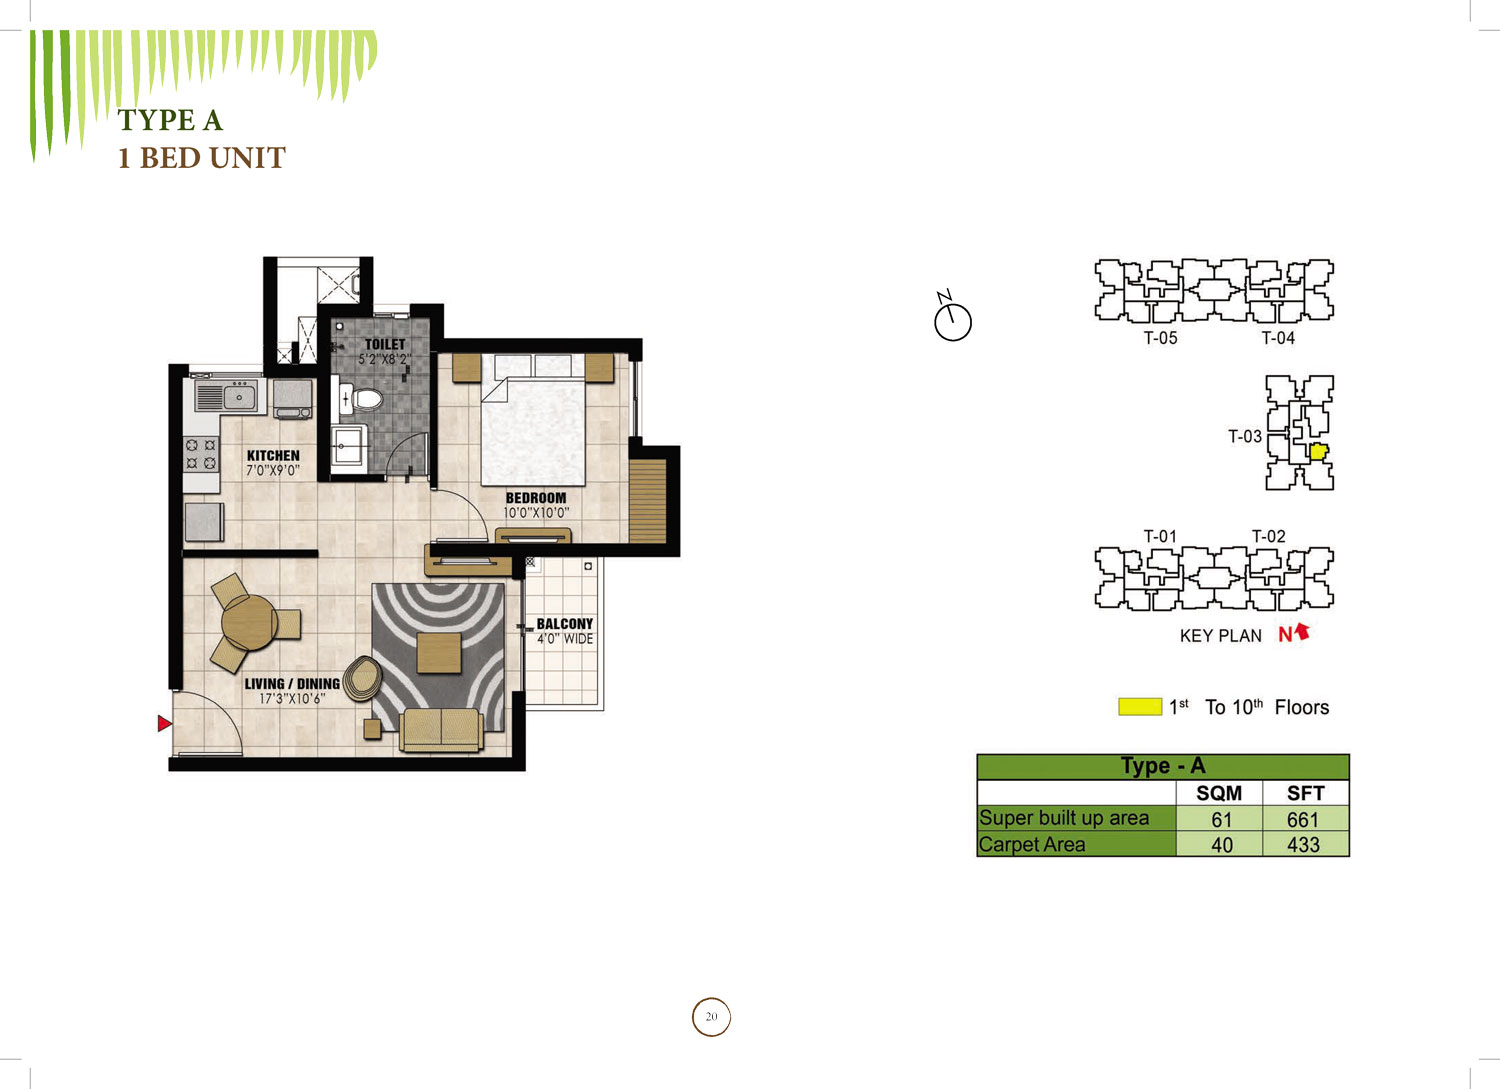 Type A - 661 Sq Ft